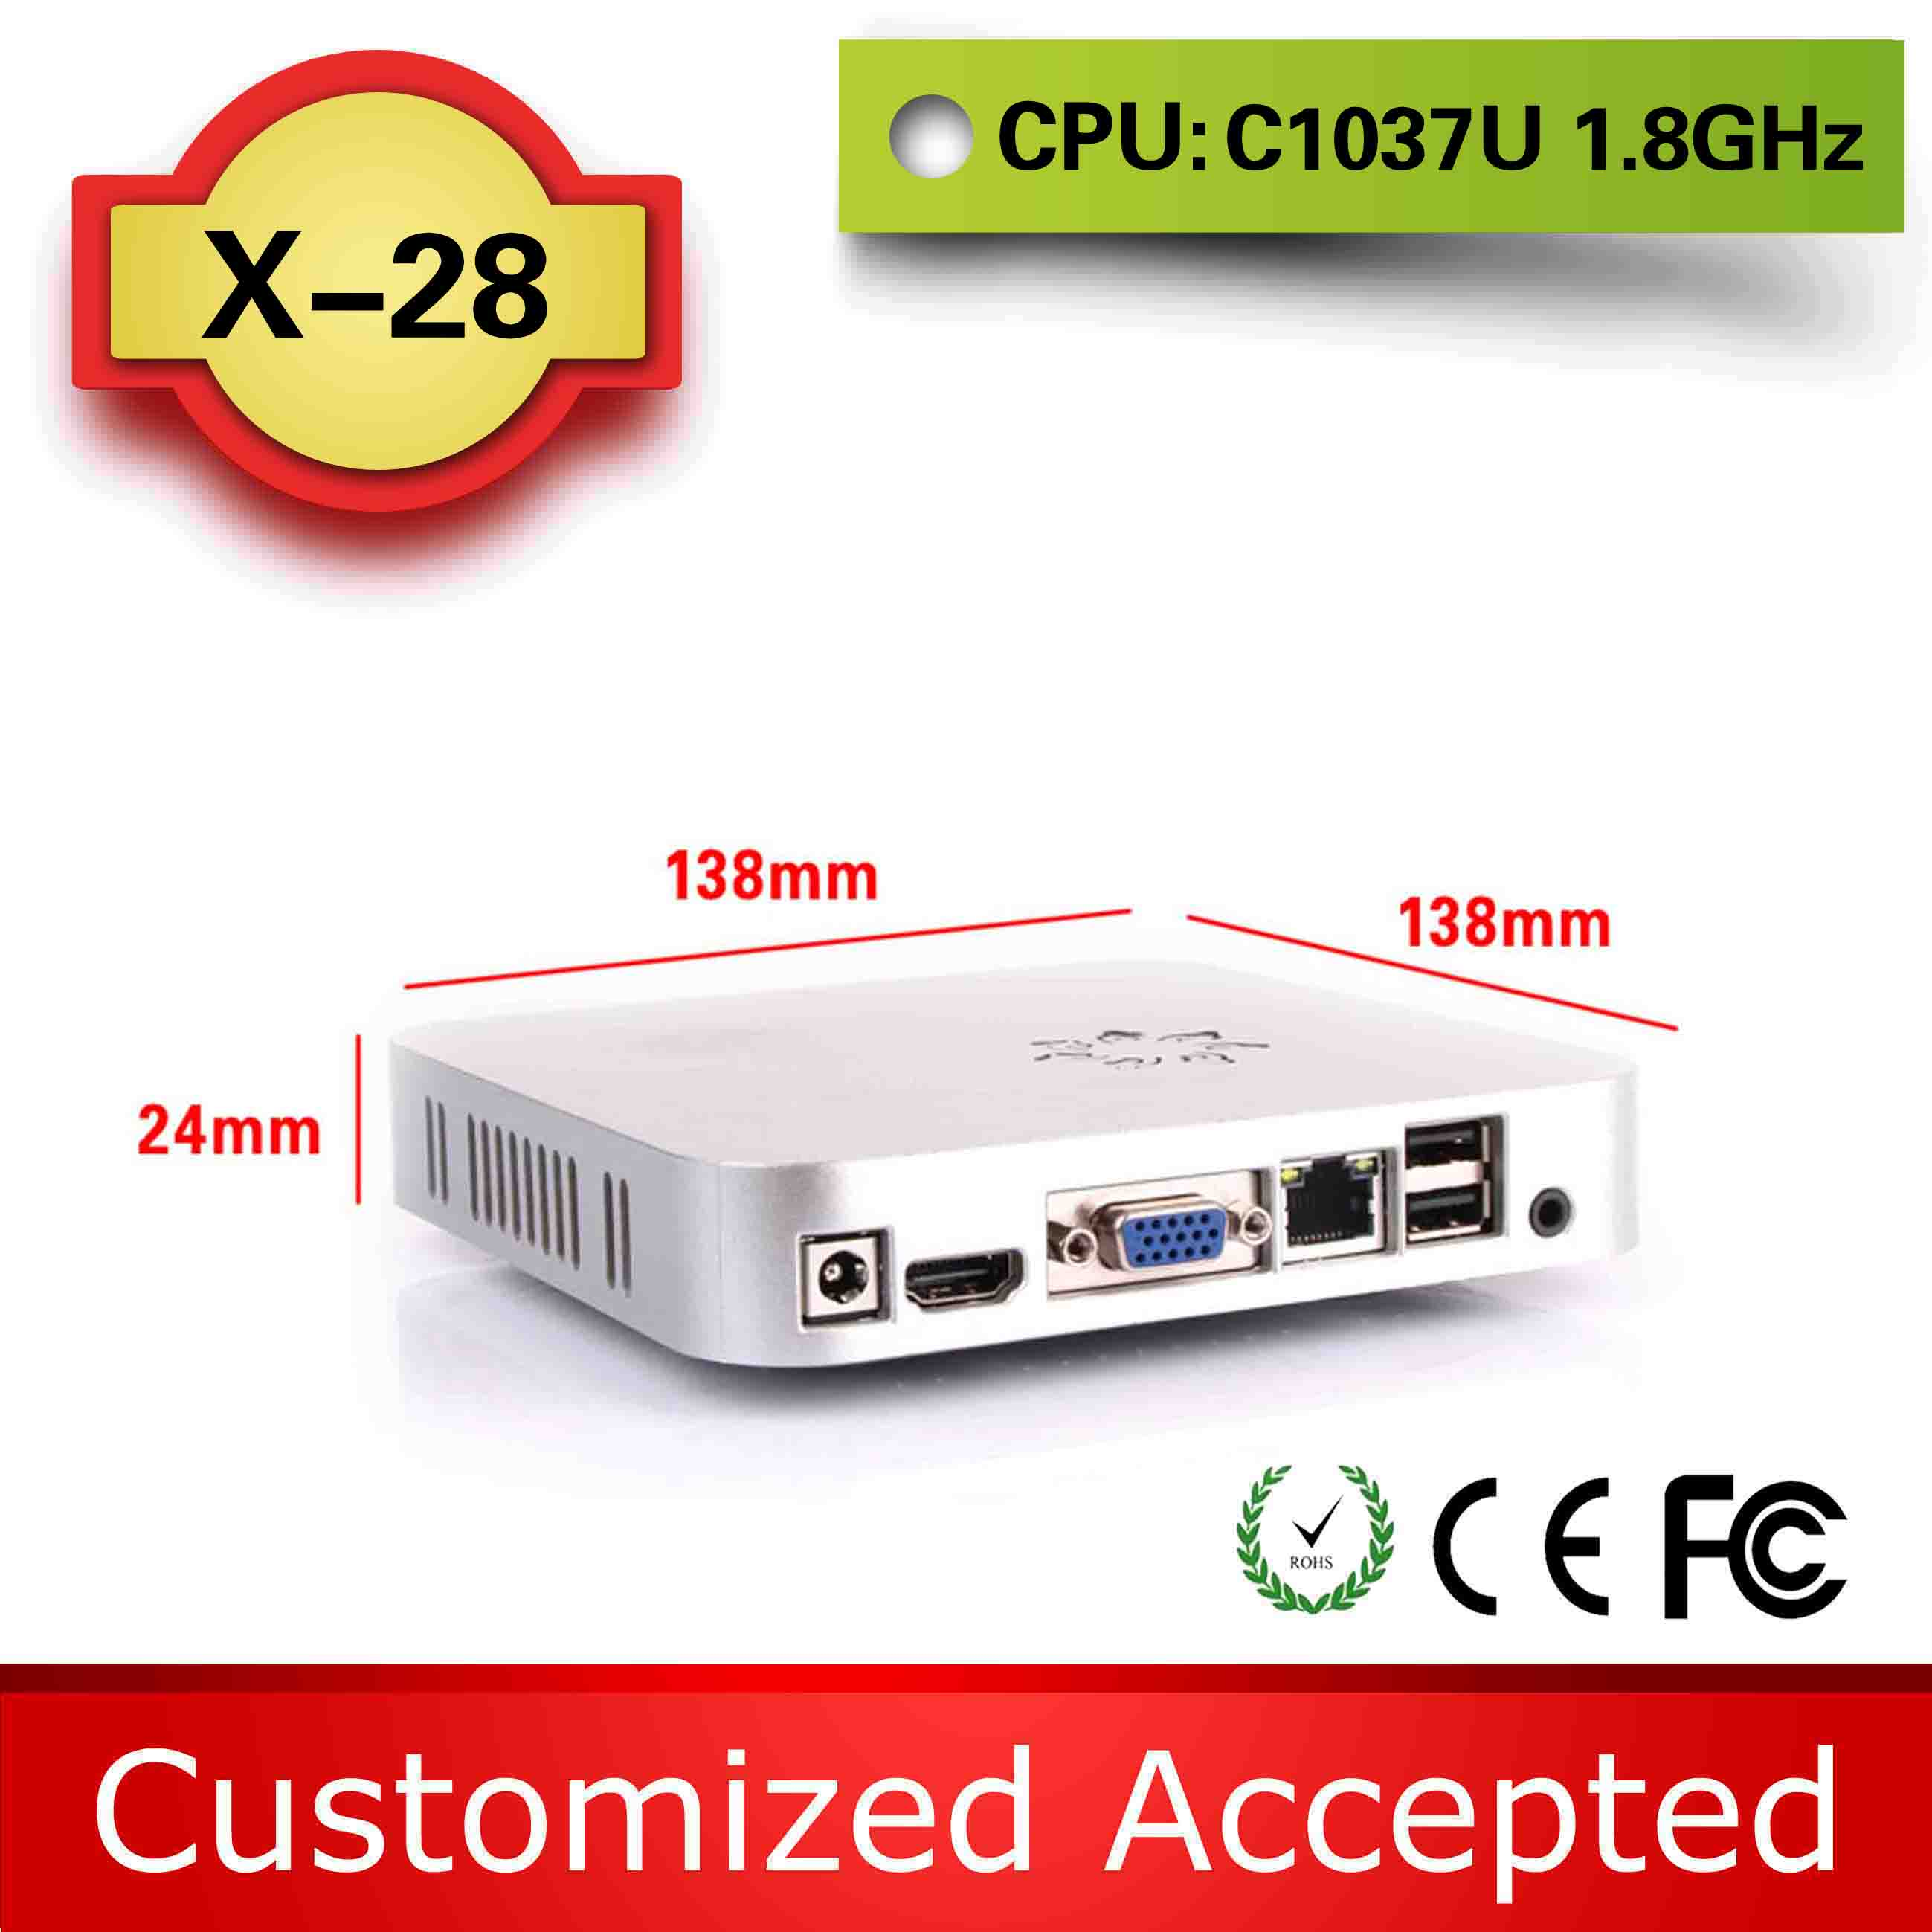 ncomputing device thin client mainframe computer X28 C1037U support wireless keyboard, mouse and touch(China (Mainland))